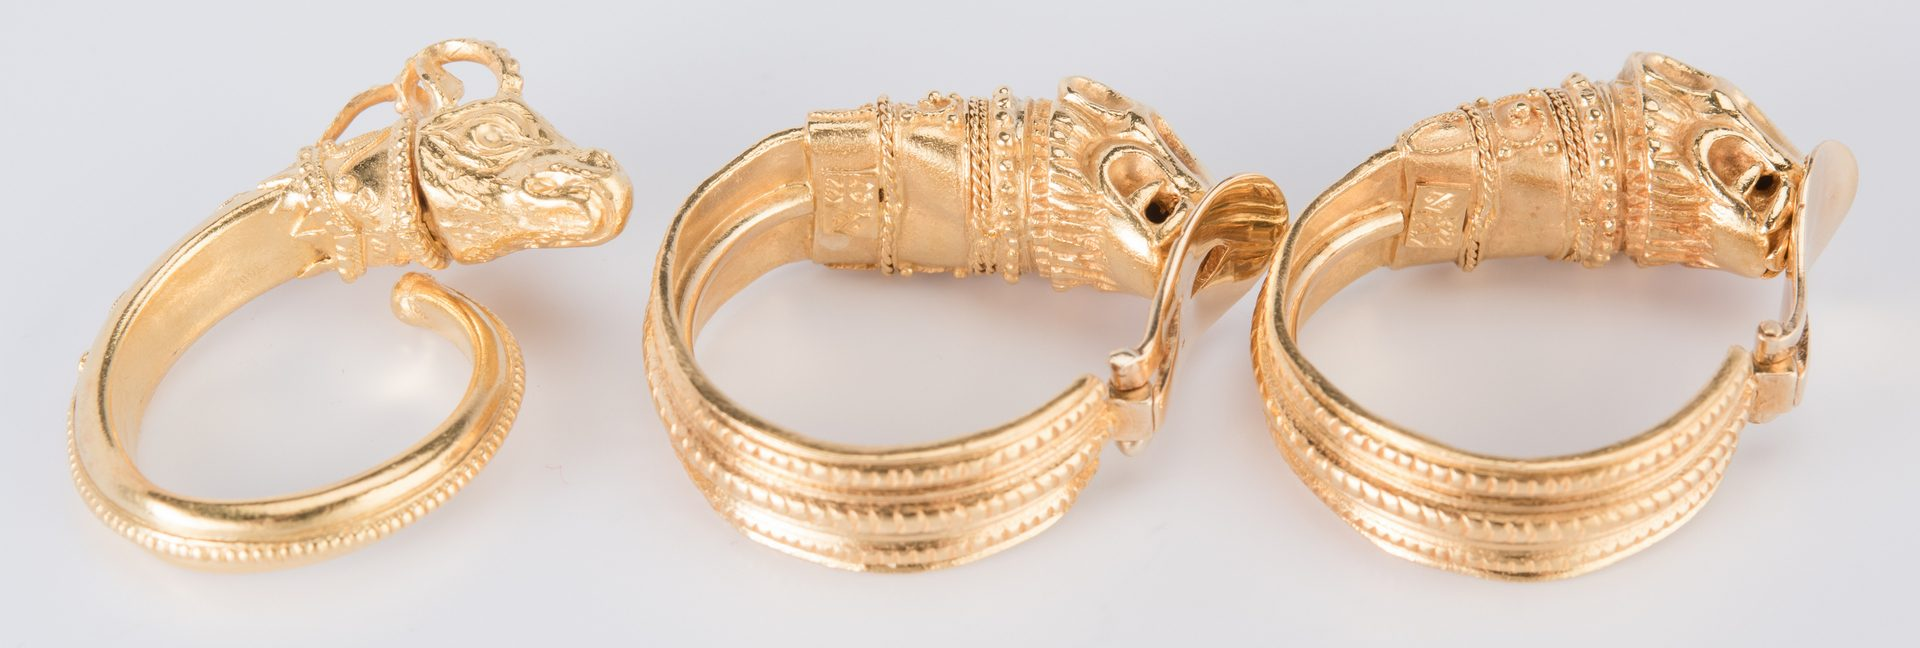 Lot 47: Set 22K Etruscan style Jewelry